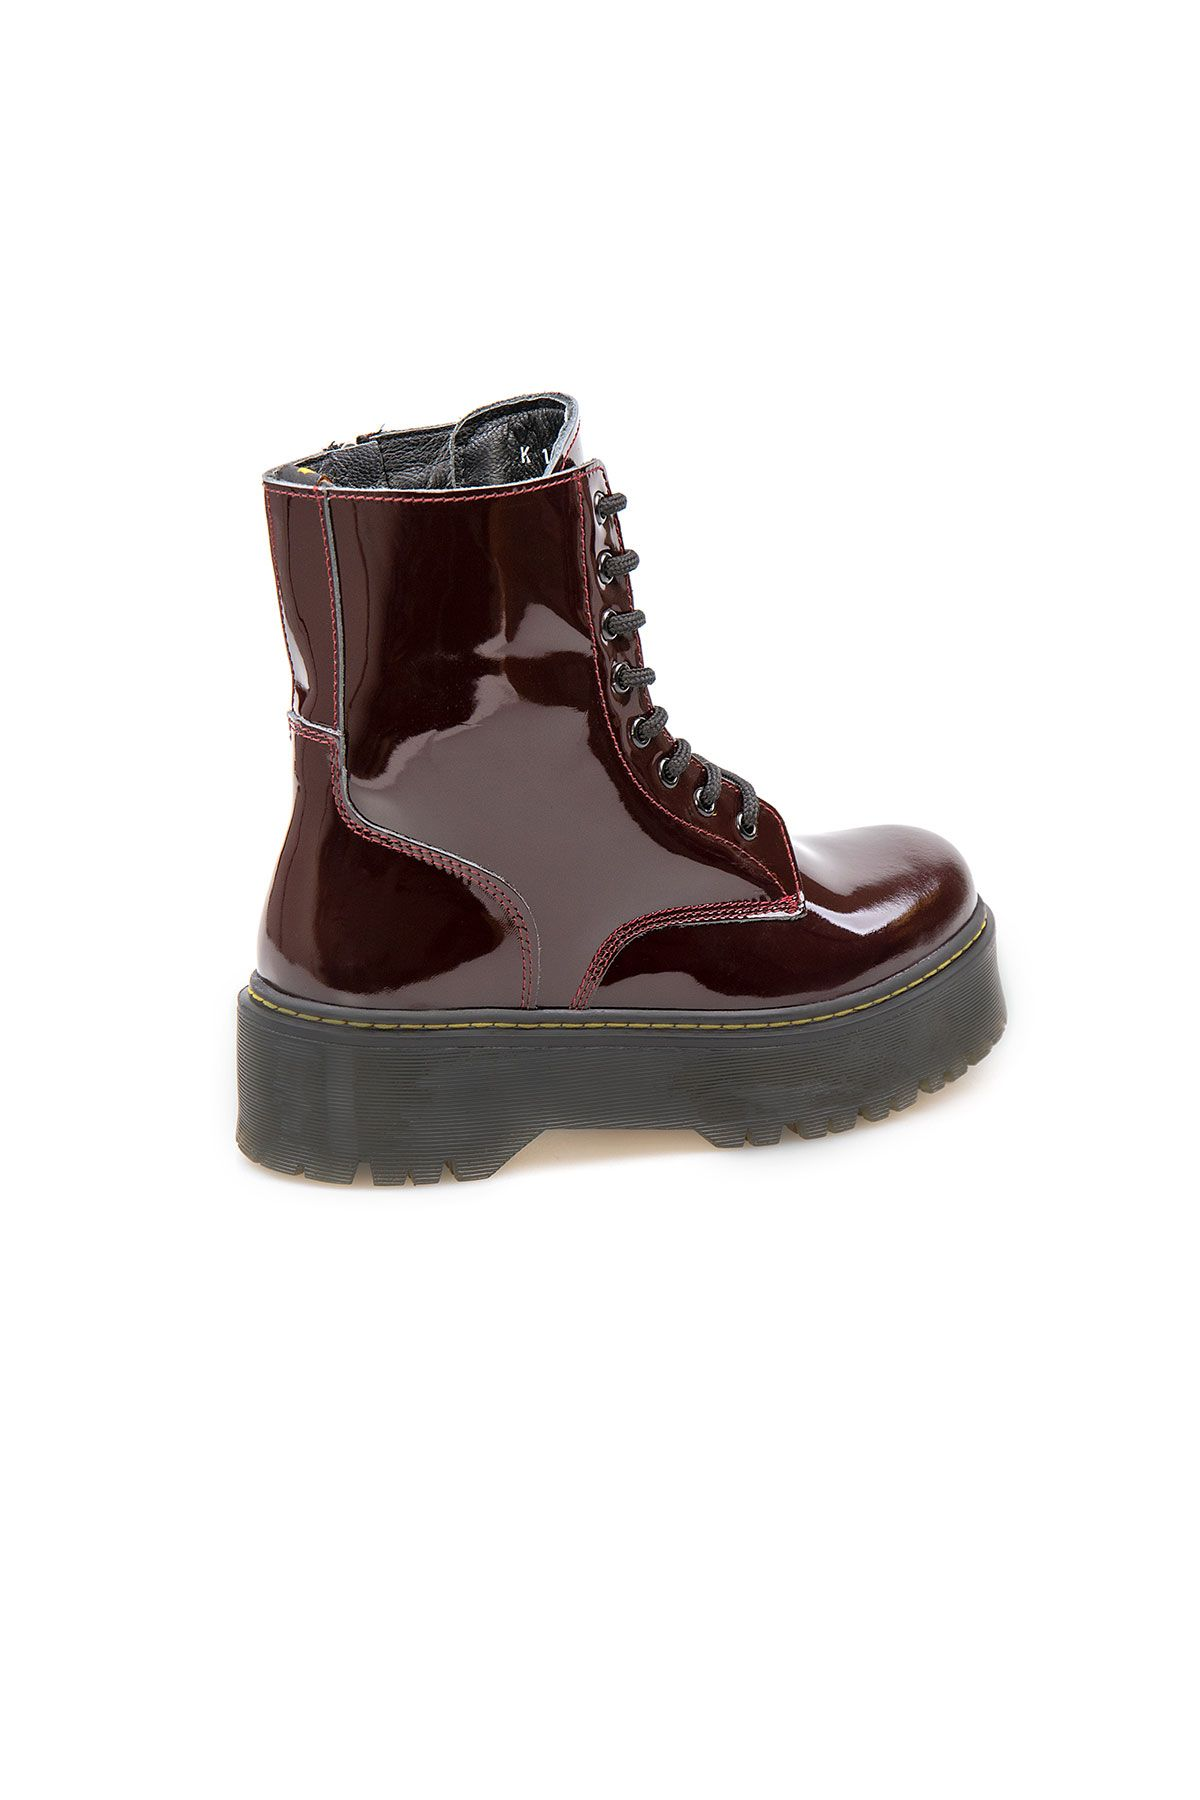 Pegia Genuine Patent Leather Women's Boots 500710 Claret red